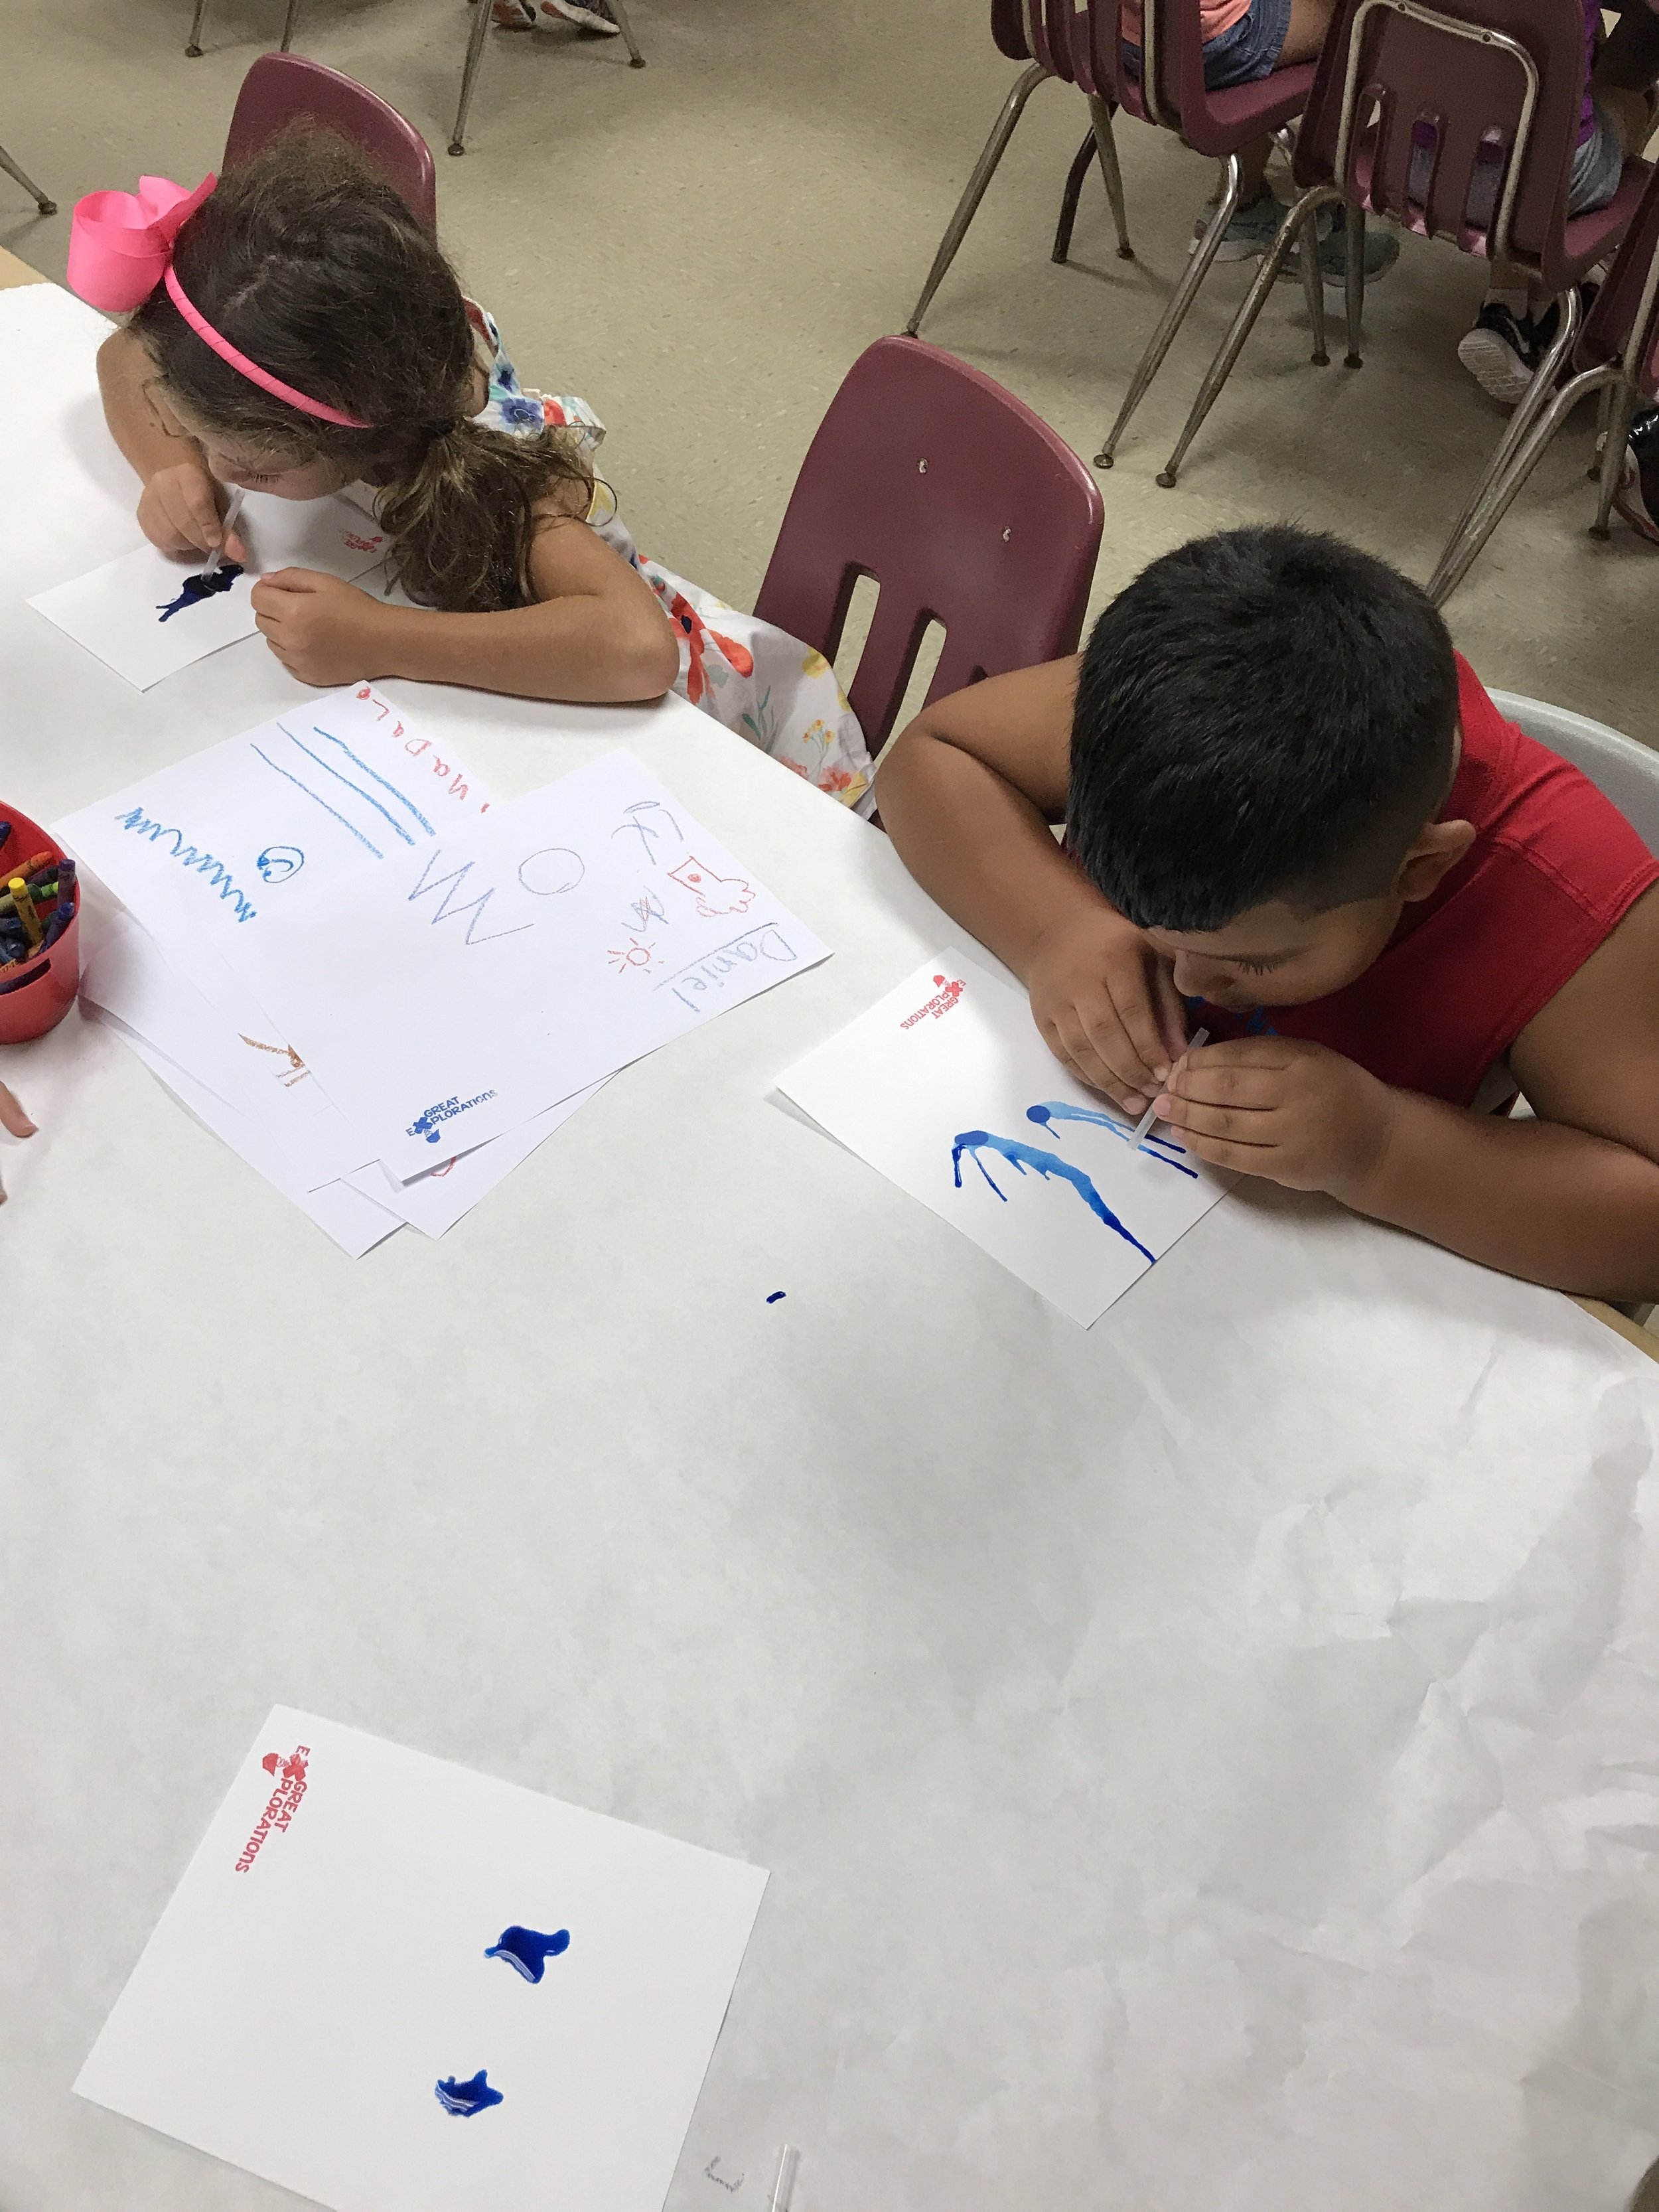 Each camper had a unique way of approaching this non-traditional method of painting.